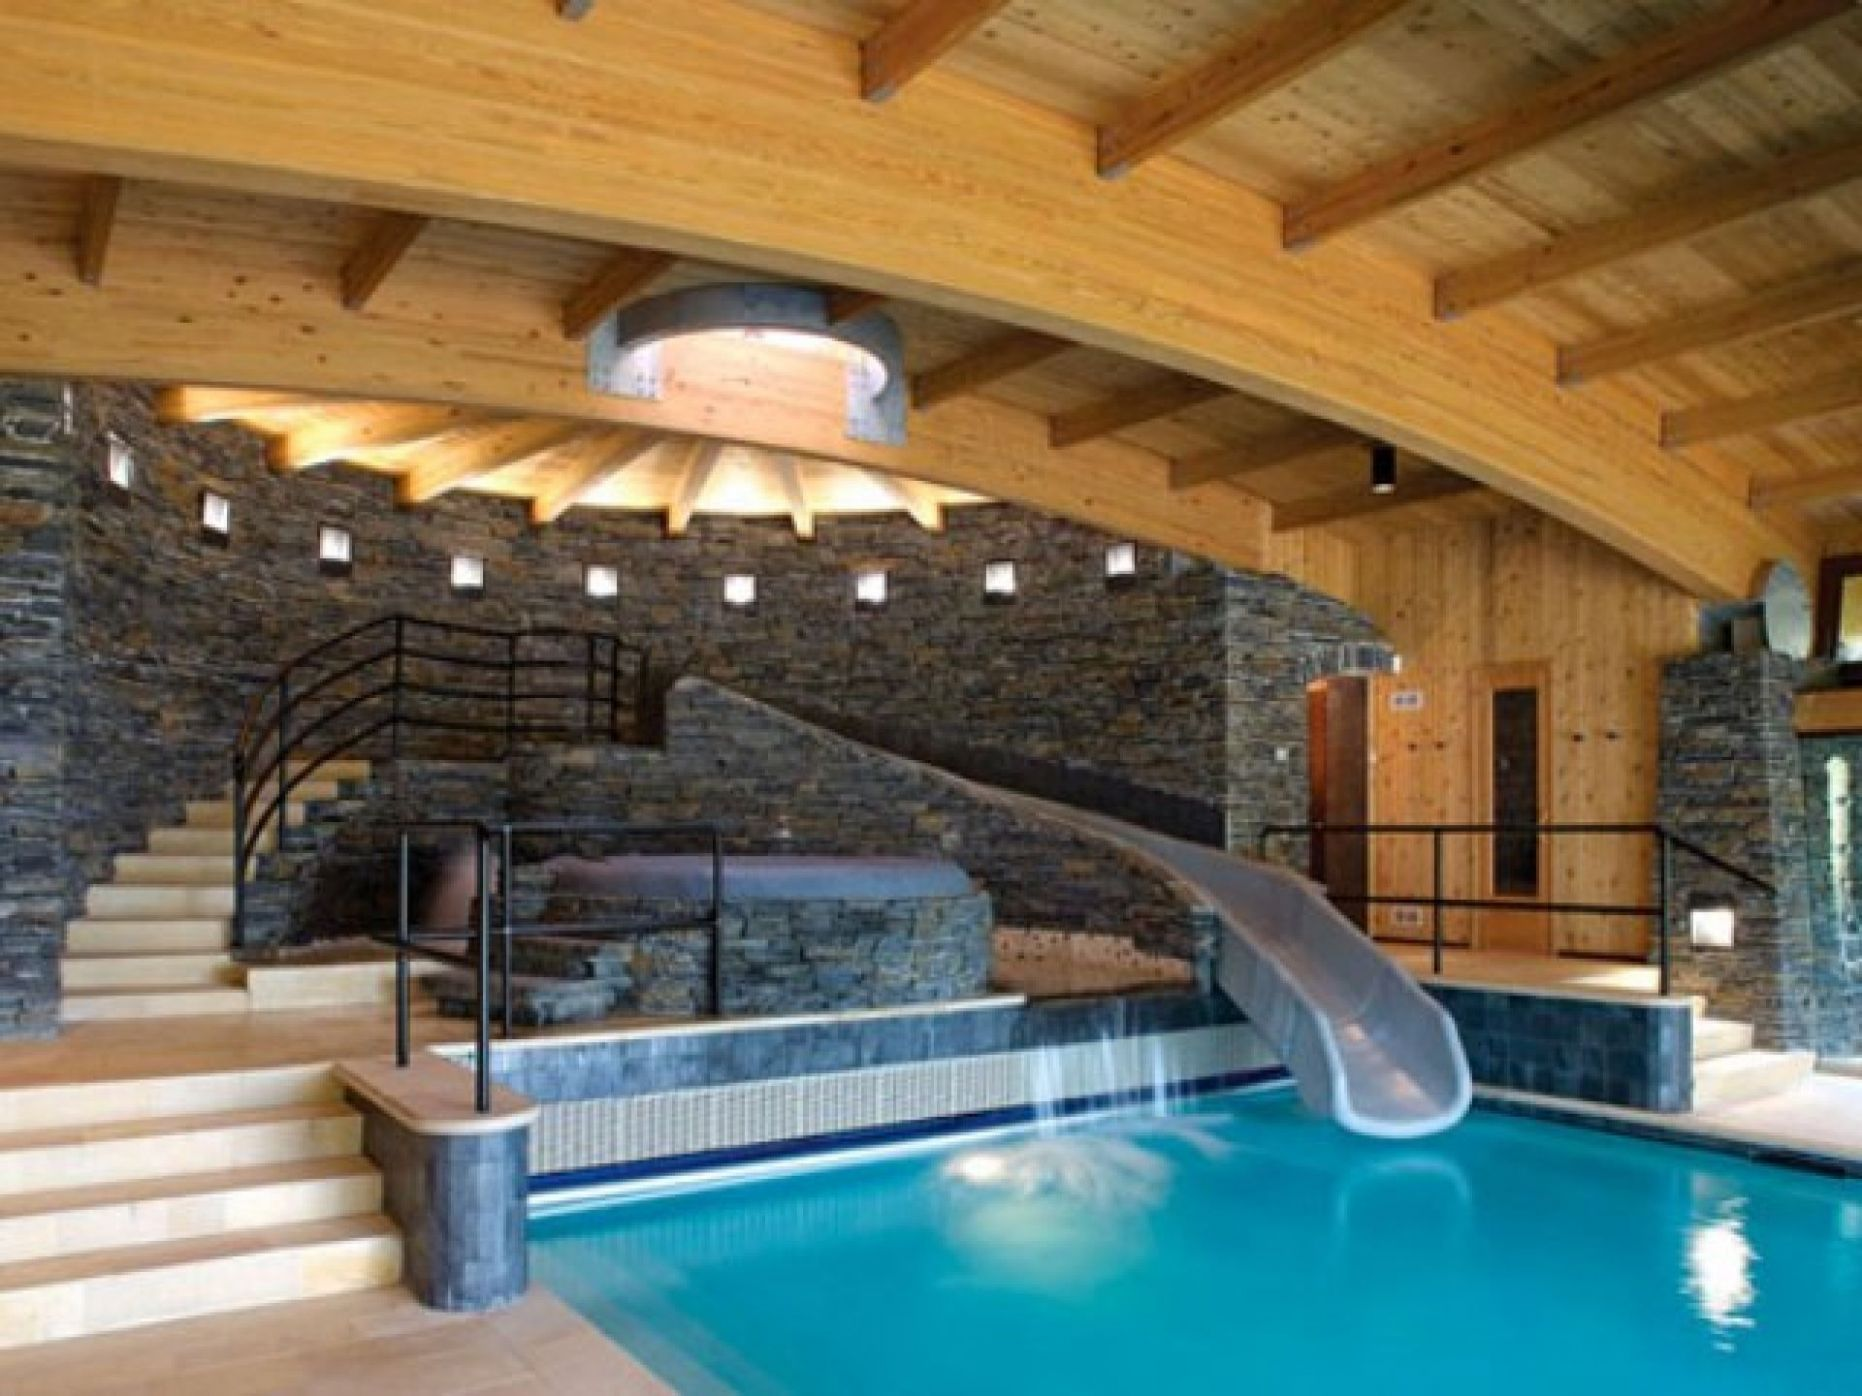 Pools Interior Design Modern House Designs Drawings Houses Inside ...